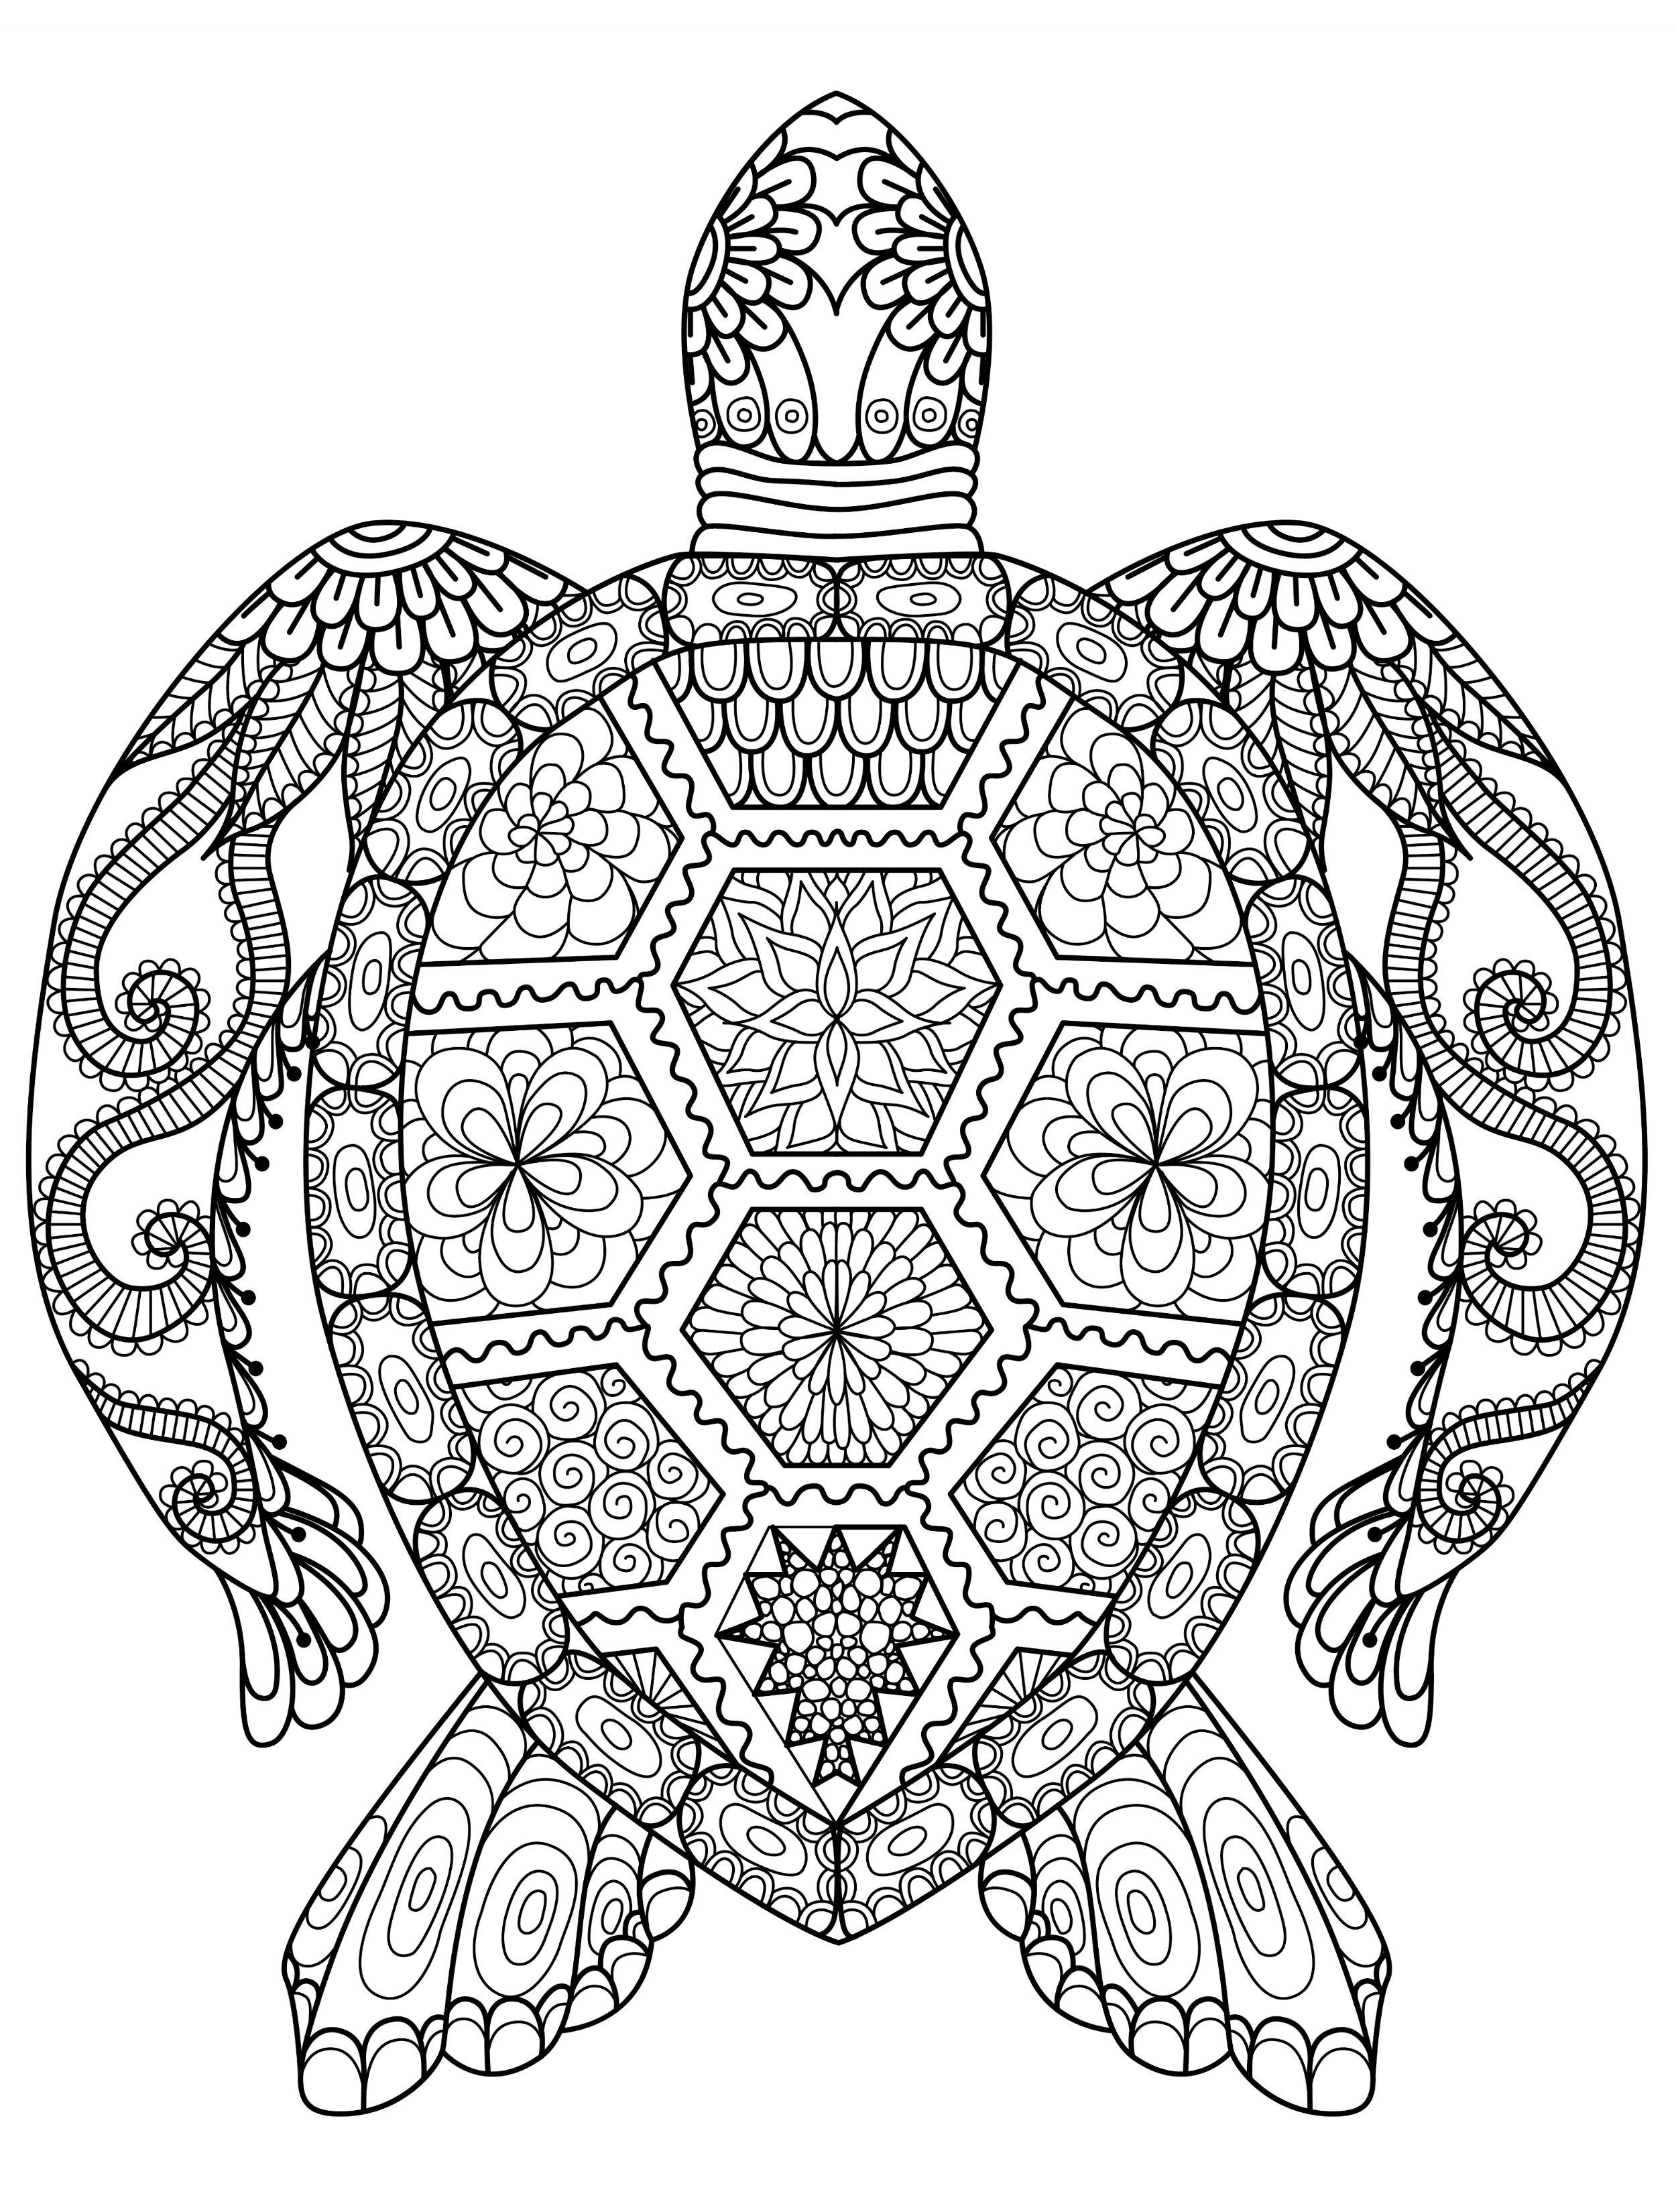 20 gorgeous free printable adult coloring pages adult coloring doodles mandalas zentangle. Black Bedroom Furniture Sets. Home Design Ideas